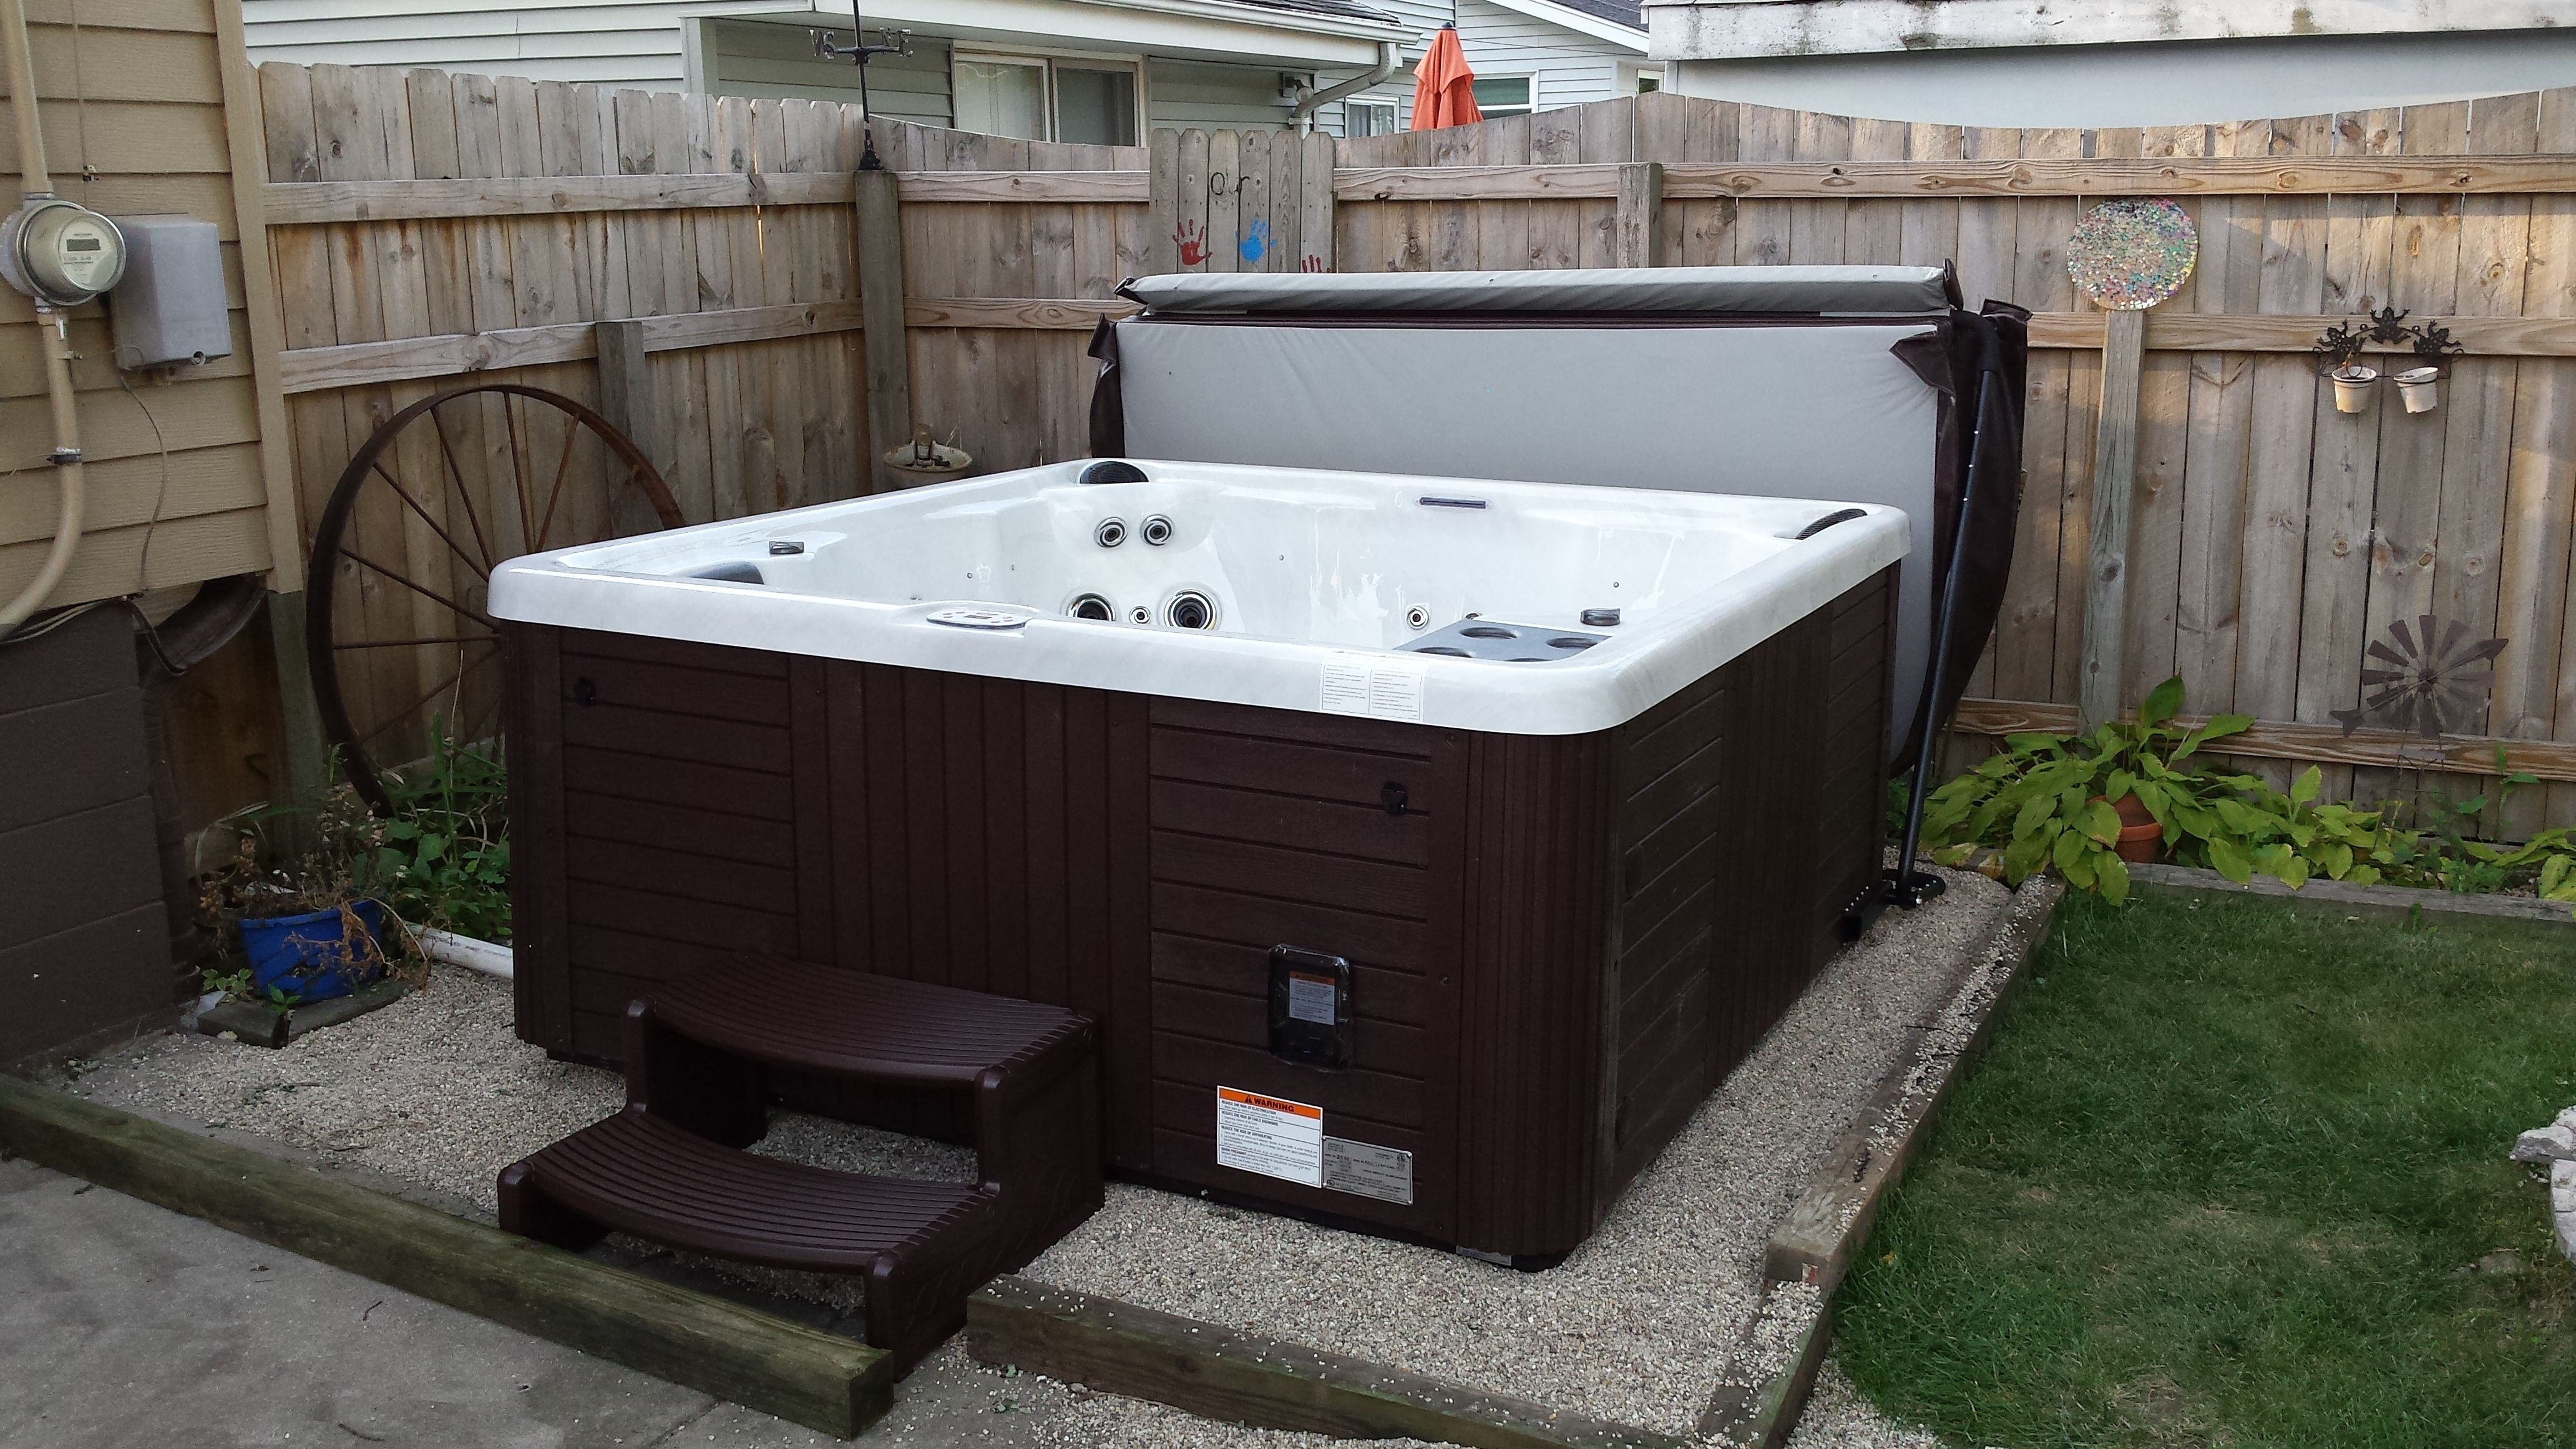 Here Is A Master Spas Legacy Installed On A Pea Gravel Patio Hot Tub Backyard Pea Gravel Patio Pool Hot Tub